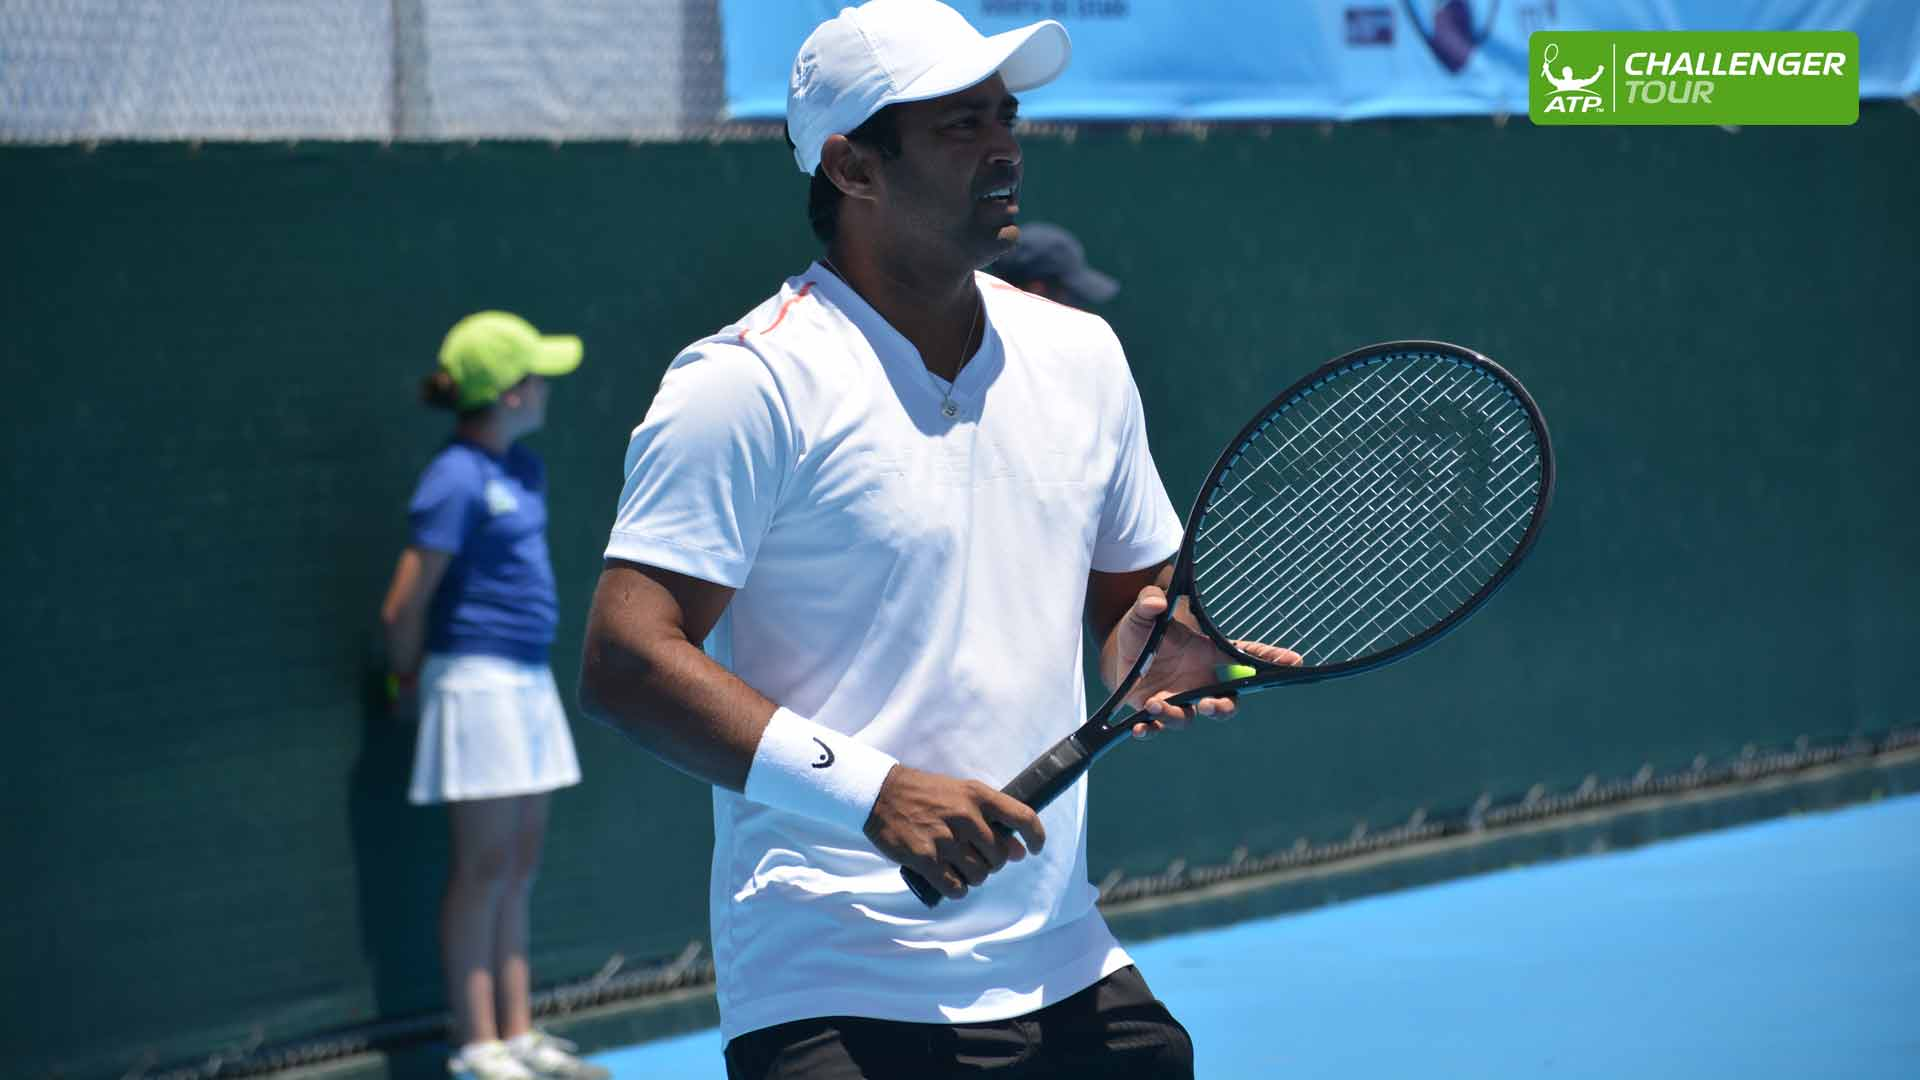 Seventeen-time Grand Slam champion Leander Paes thrilled fans on the doubles court at the ATP Challenger Tour event in Leon.